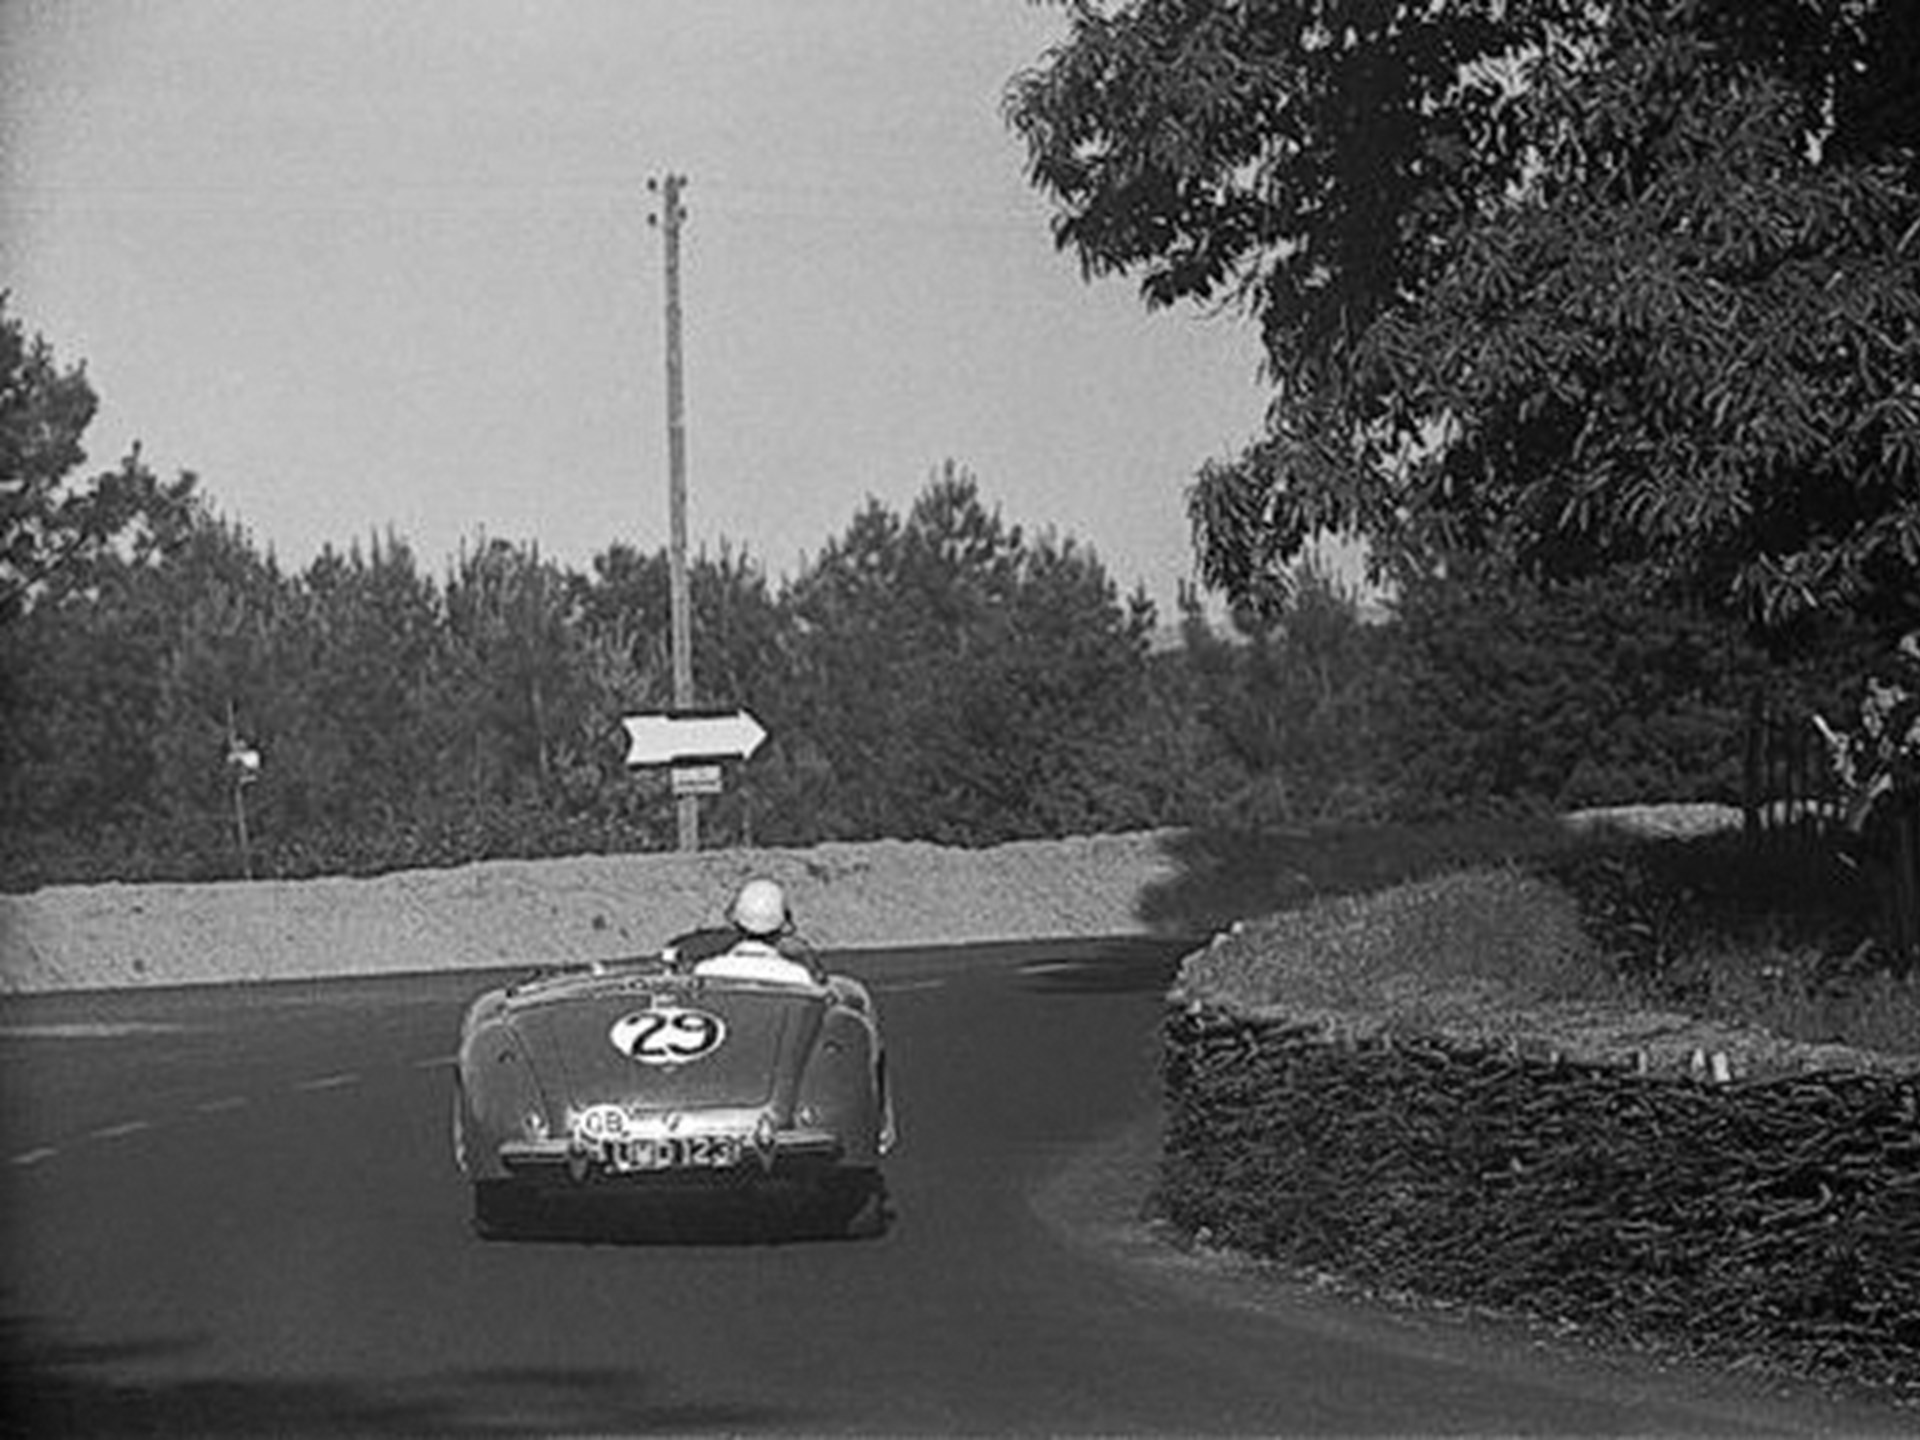 The 2-Litre Sports enters a corner at the 1949 24 Hours of Le Mans.